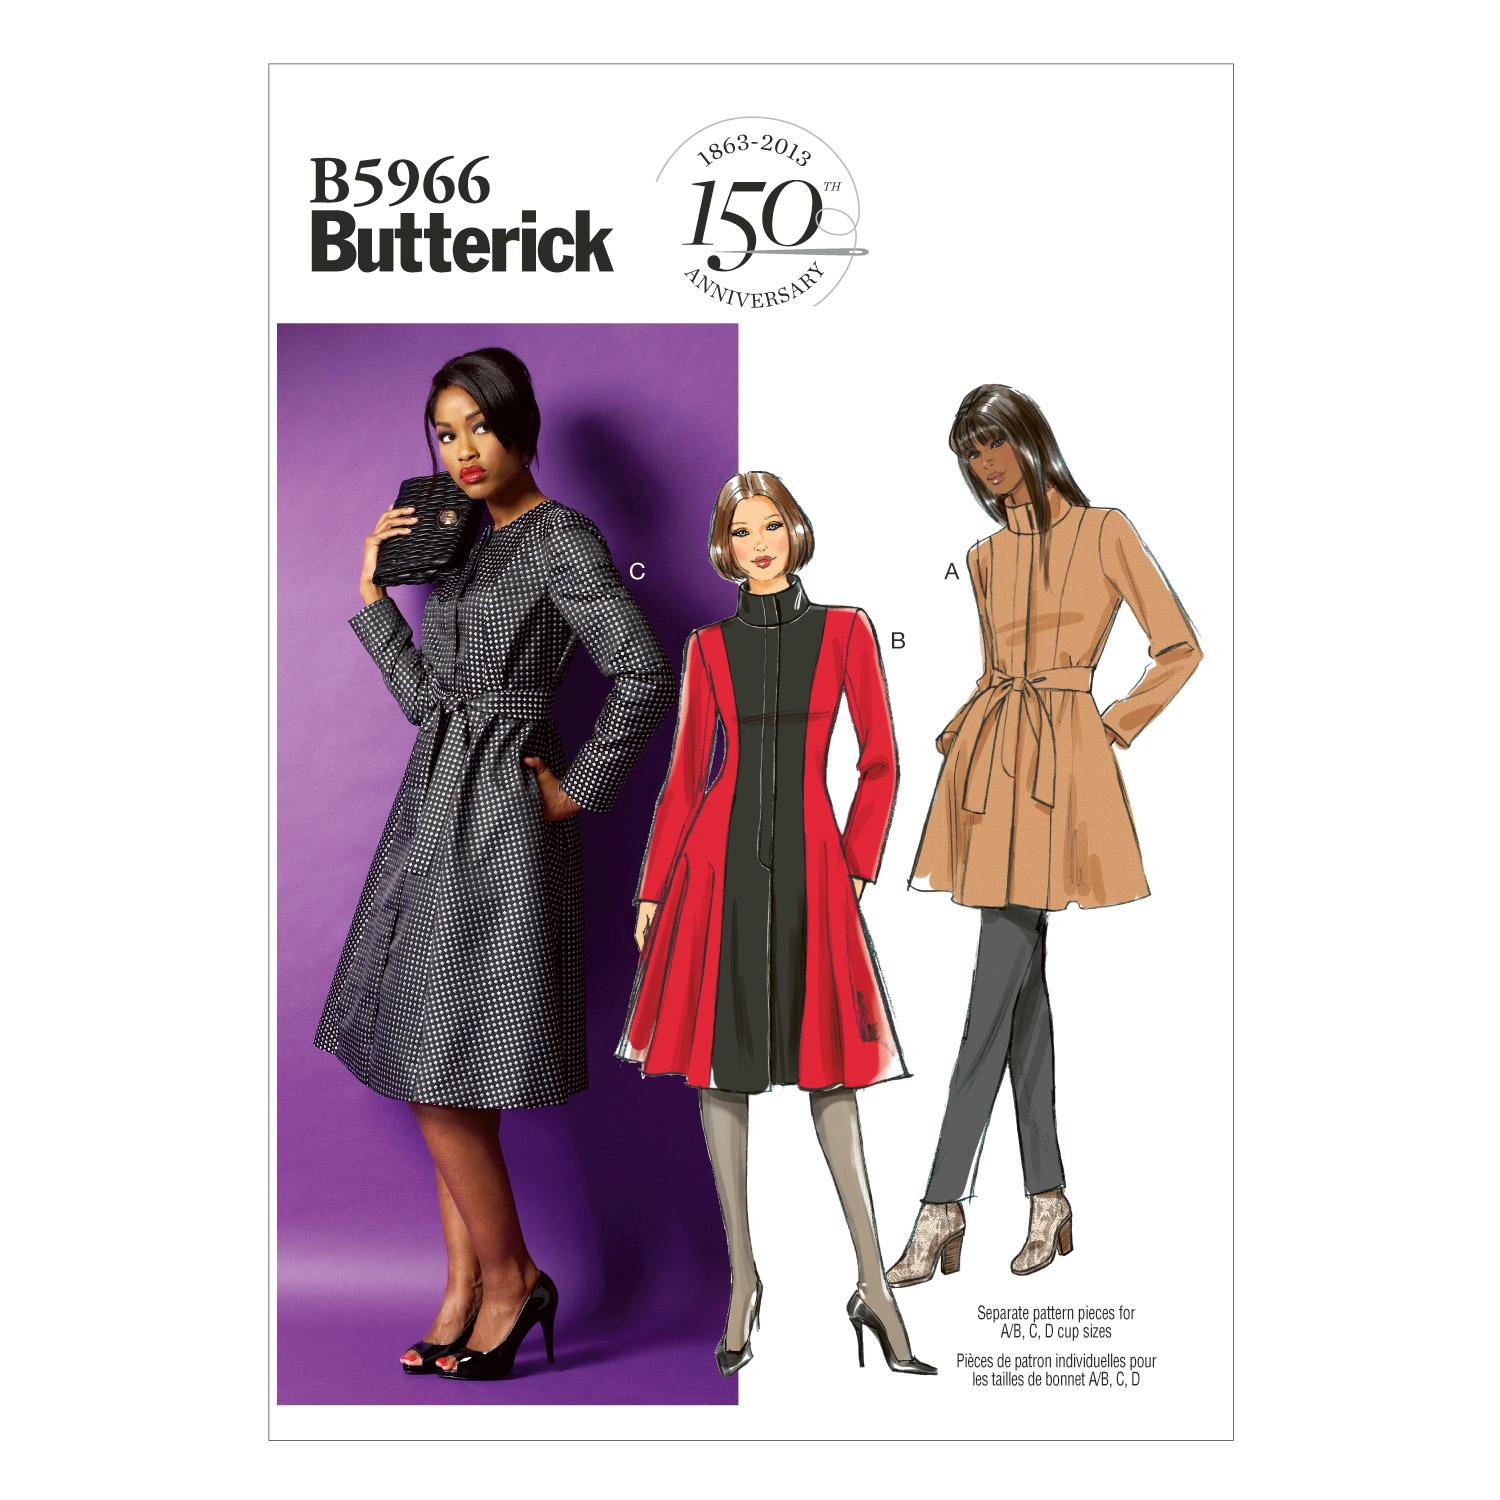 Butterick B5966 Misses'/Women's Jacket, Coat and Belt